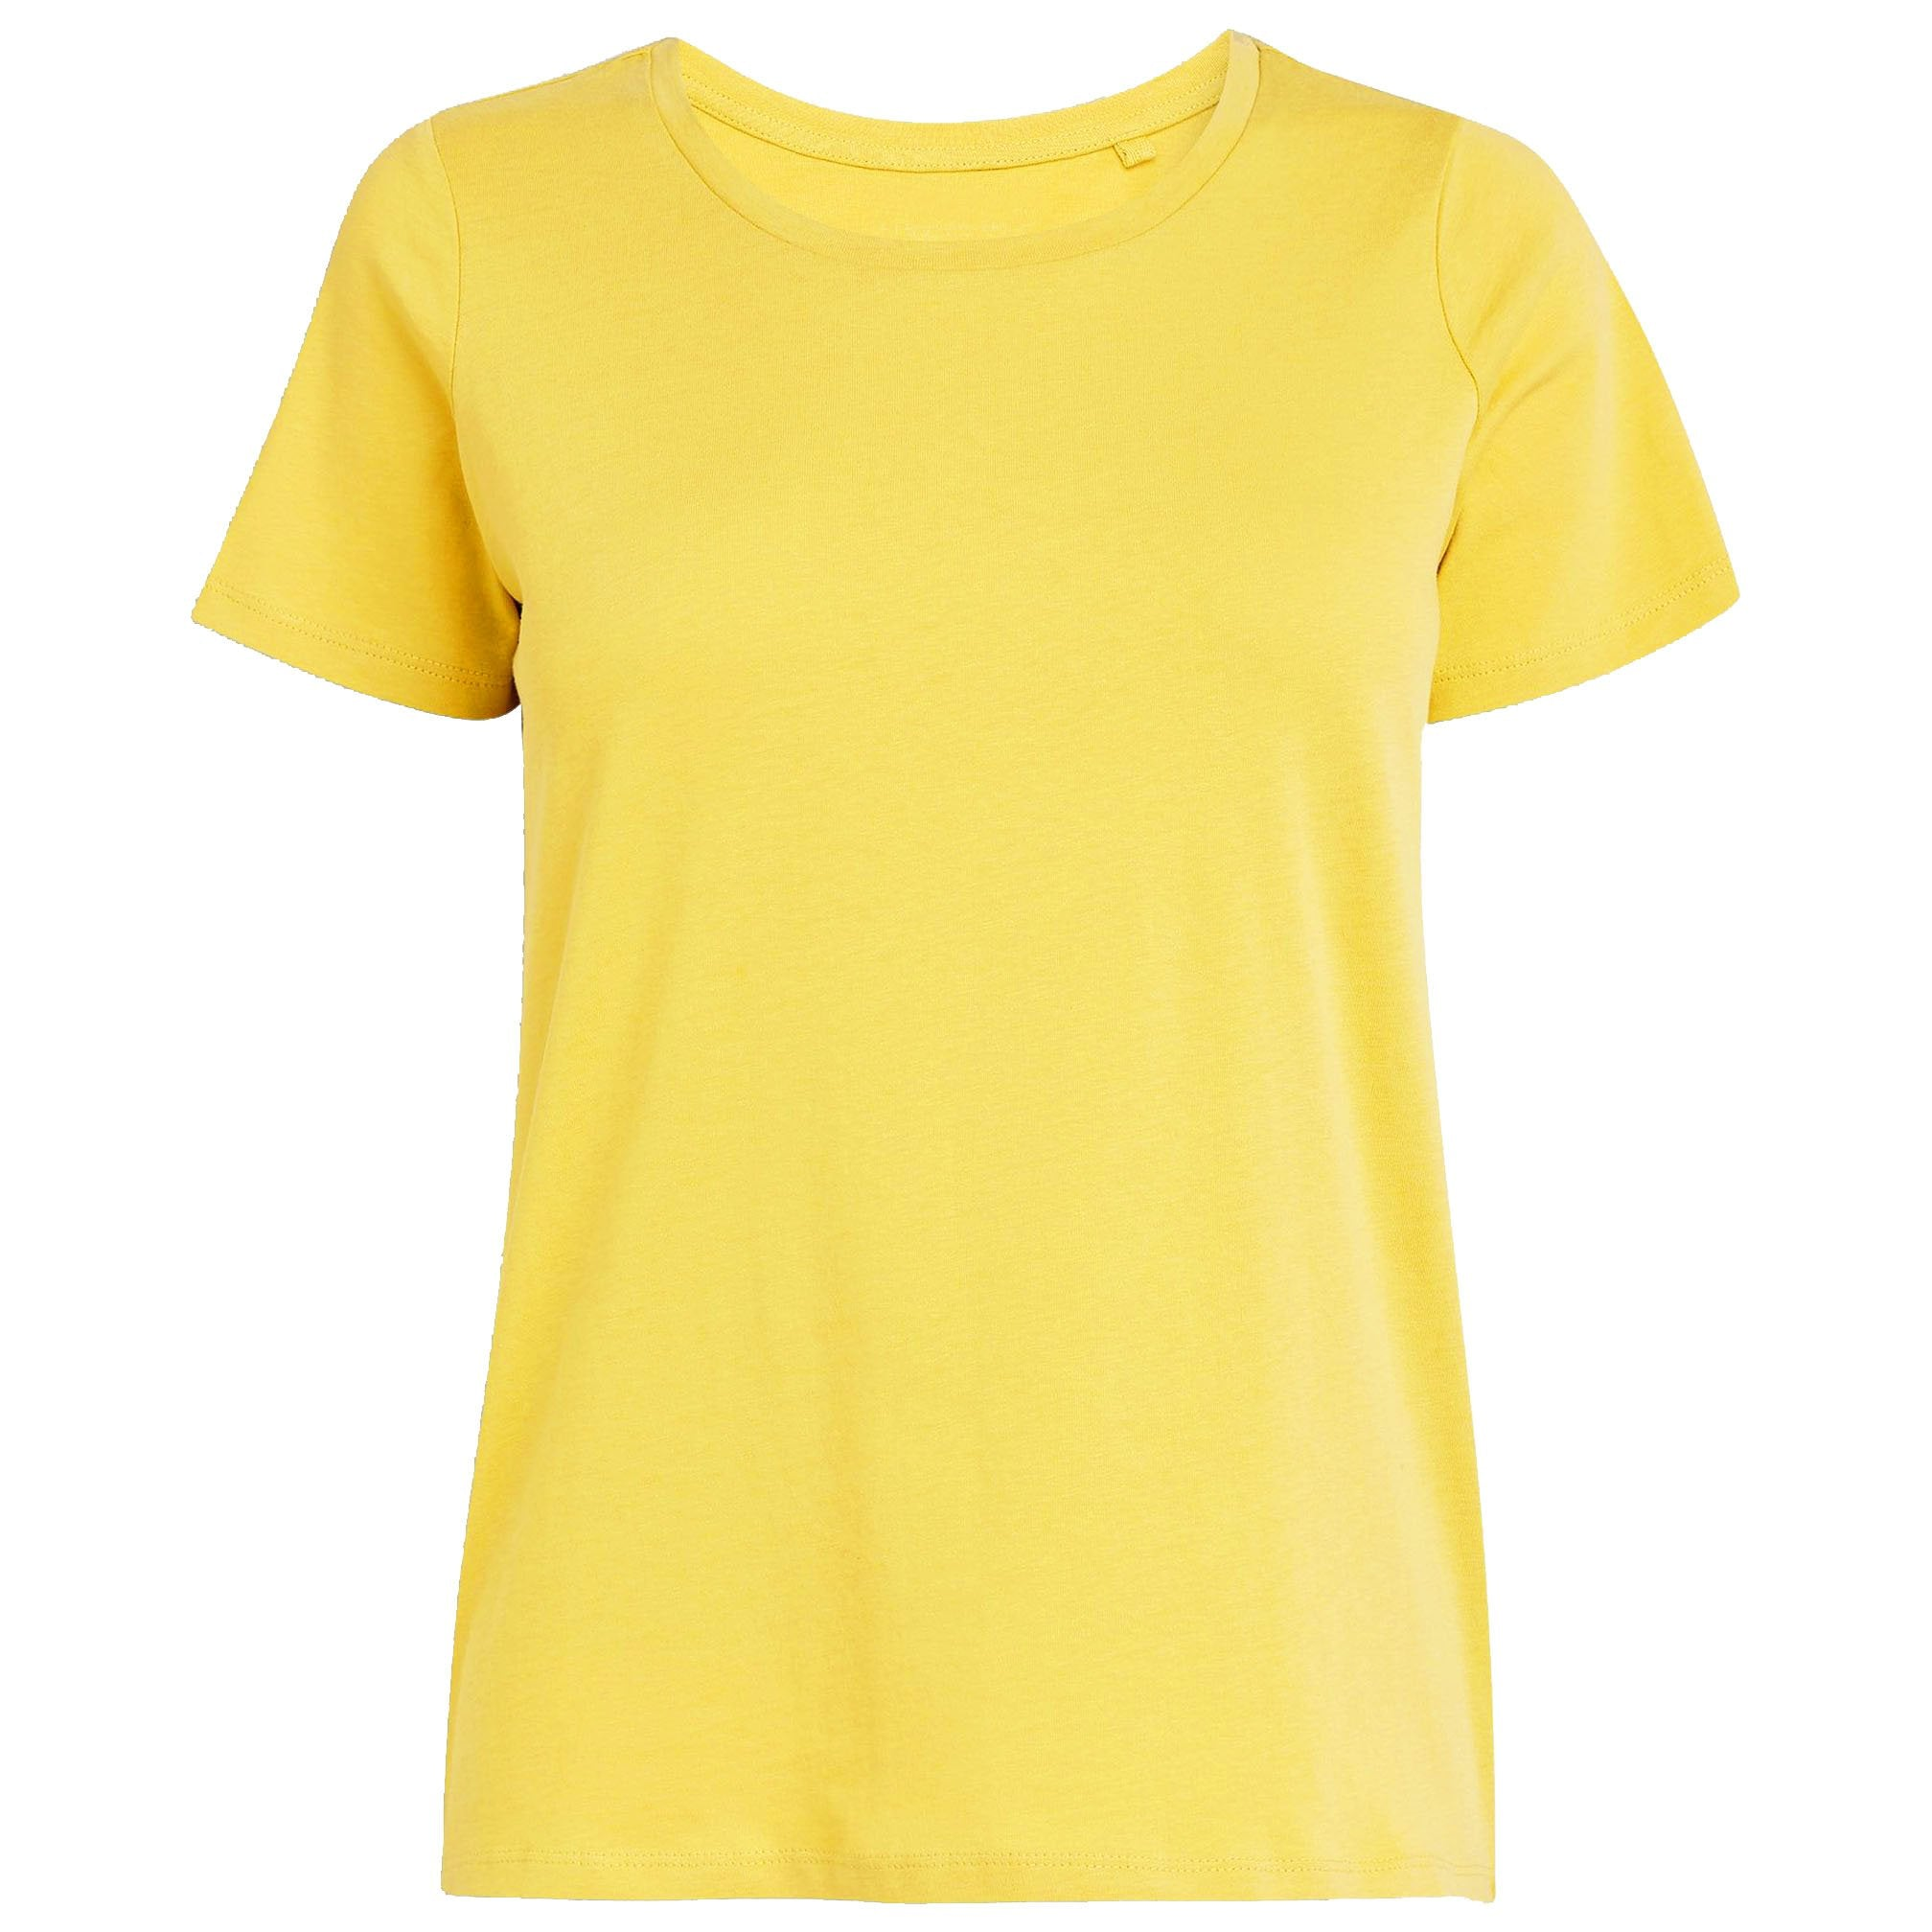 Women's Short Sleeve Crewneck Tee T Shirt Cotton Top